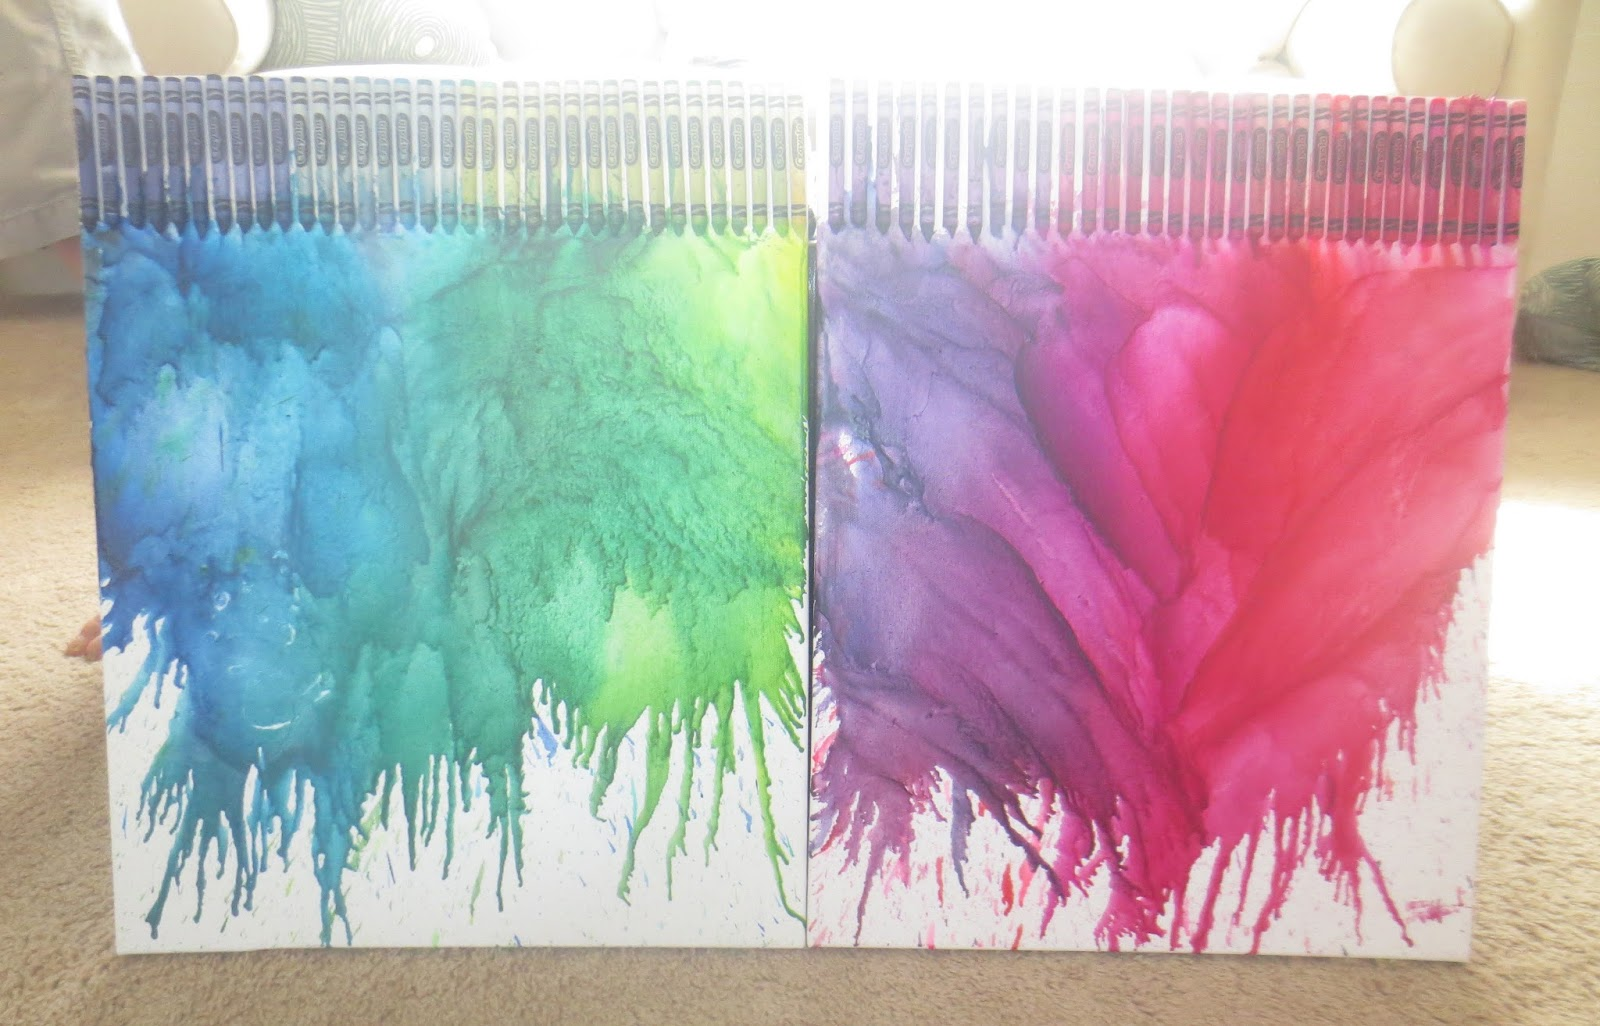 color crayon art : This Would Actually Be Really Cool To Do One Huge Canvas With All The Colors Of The Crayons Minus Brown And Black And Grey As Those Might Go Muddy